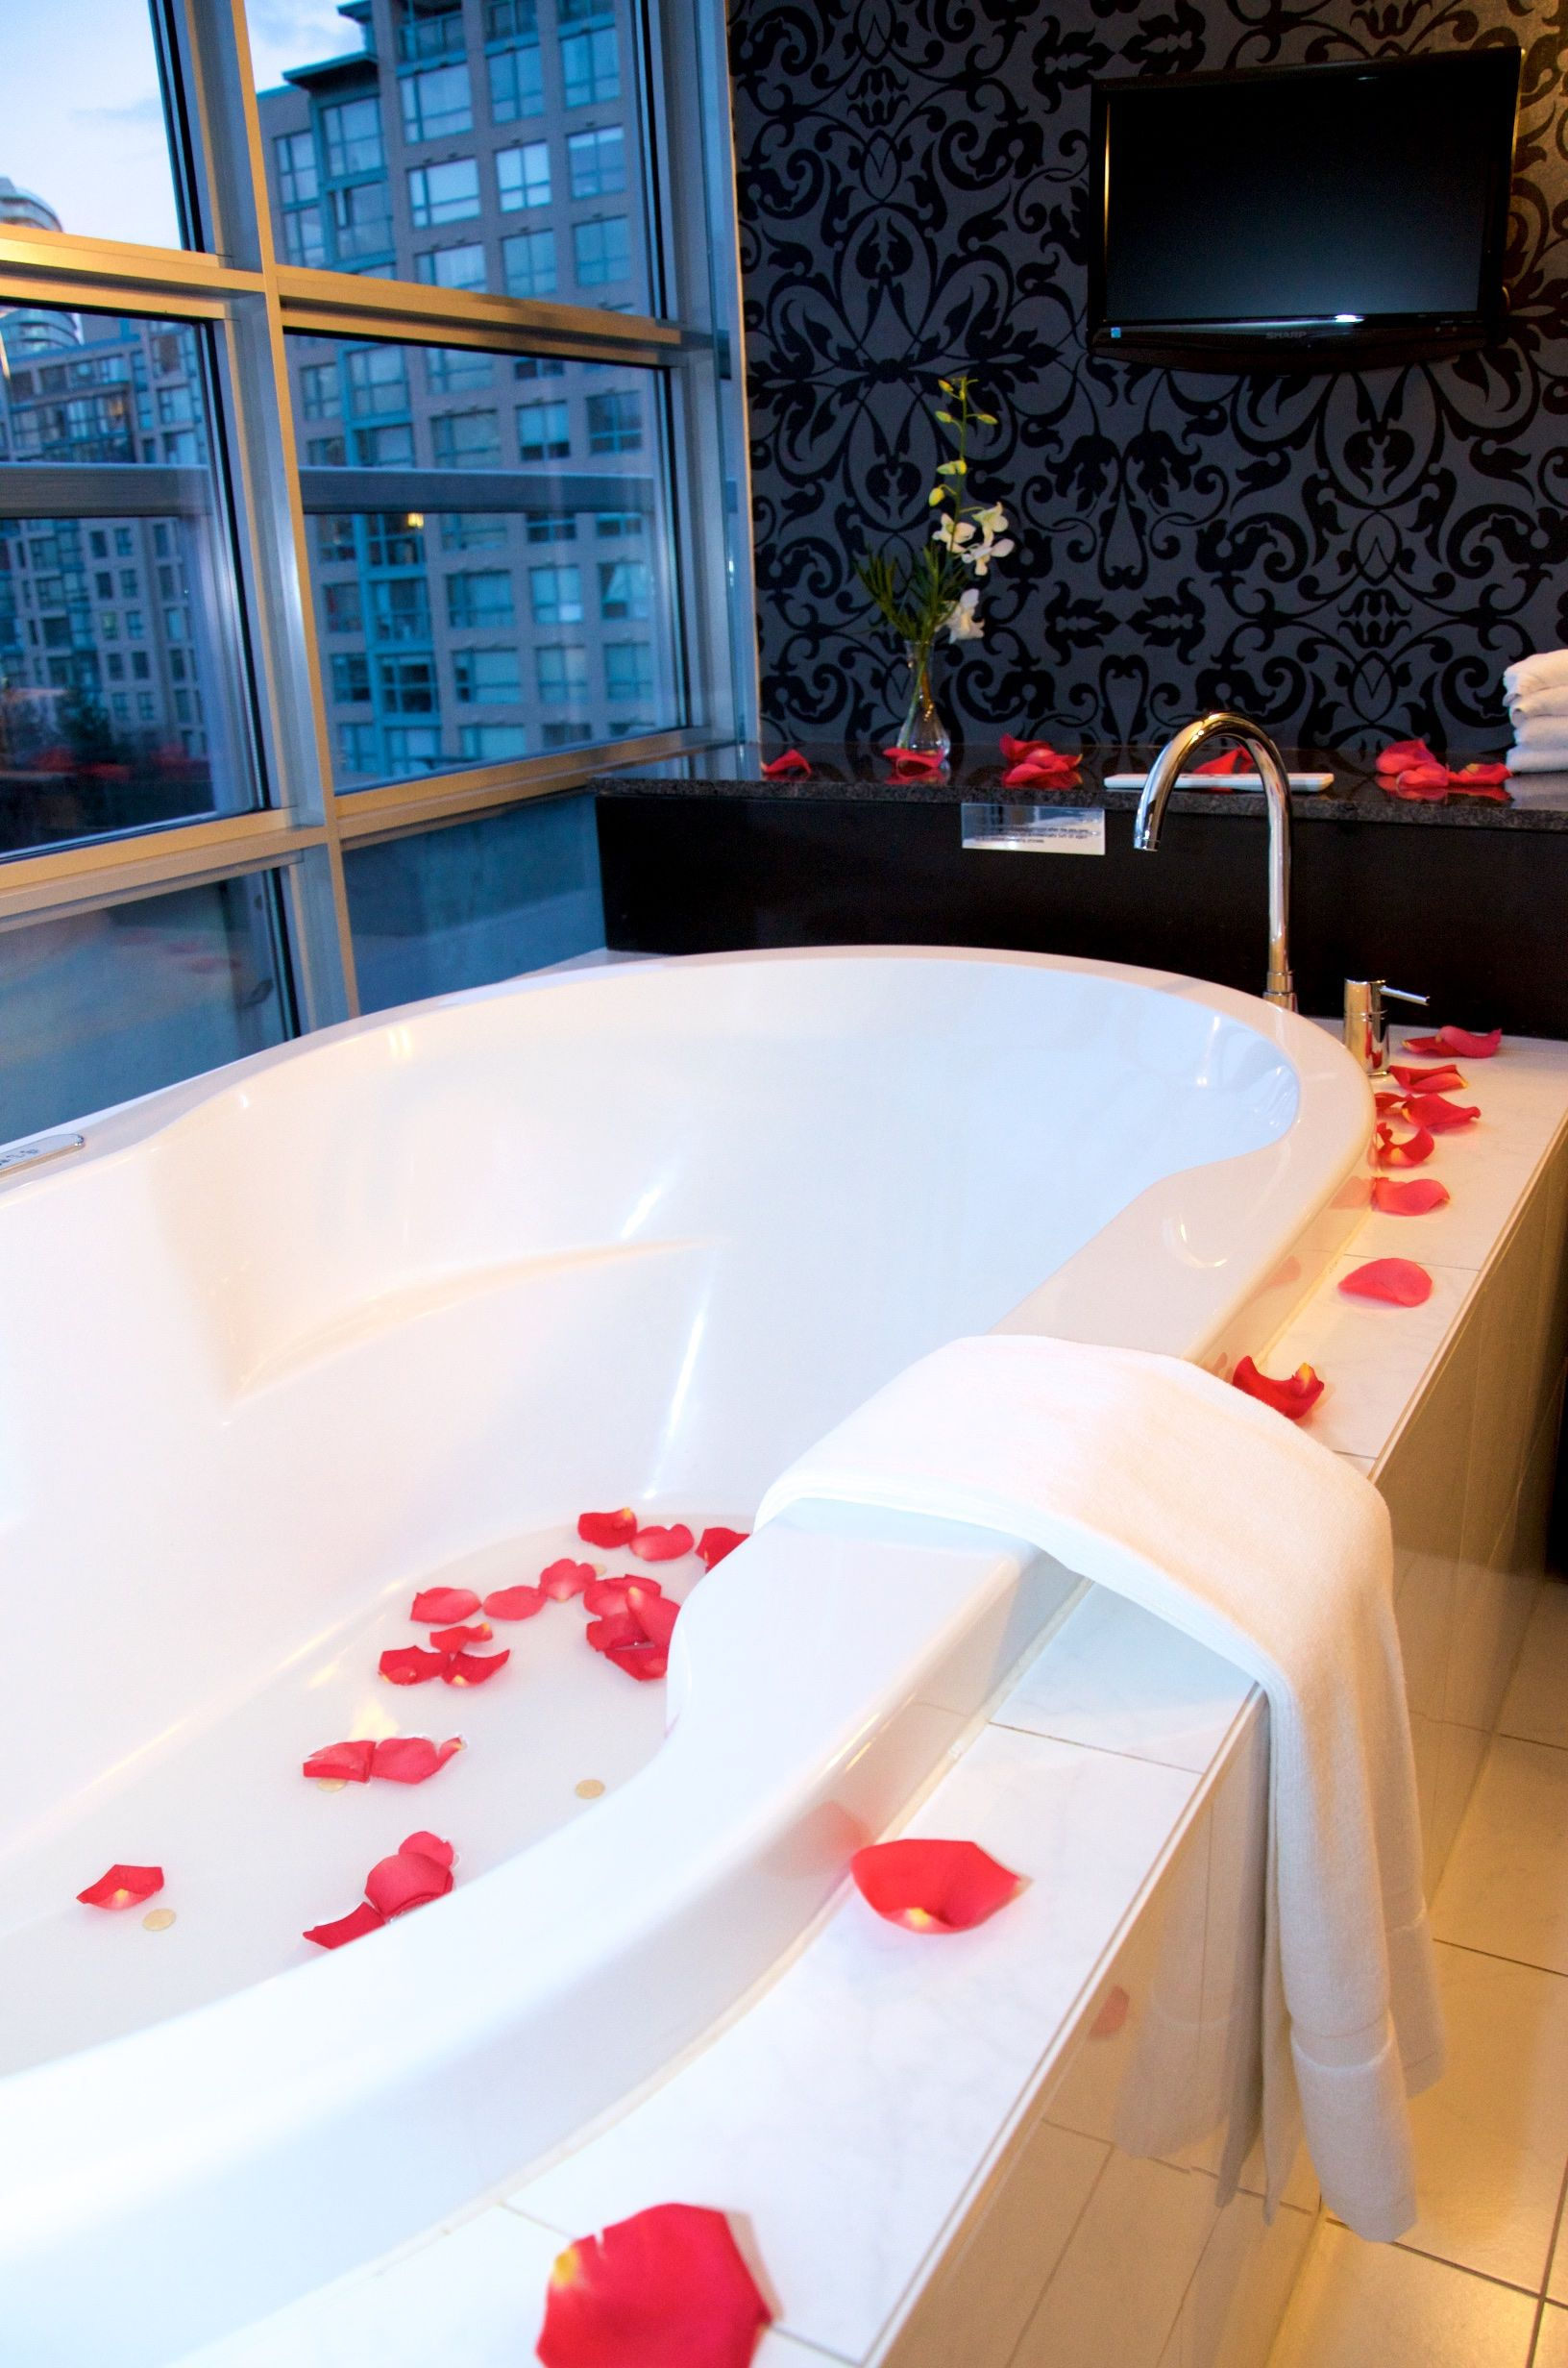 Rose petals and a great view from the bathtub! Surprise Me ...